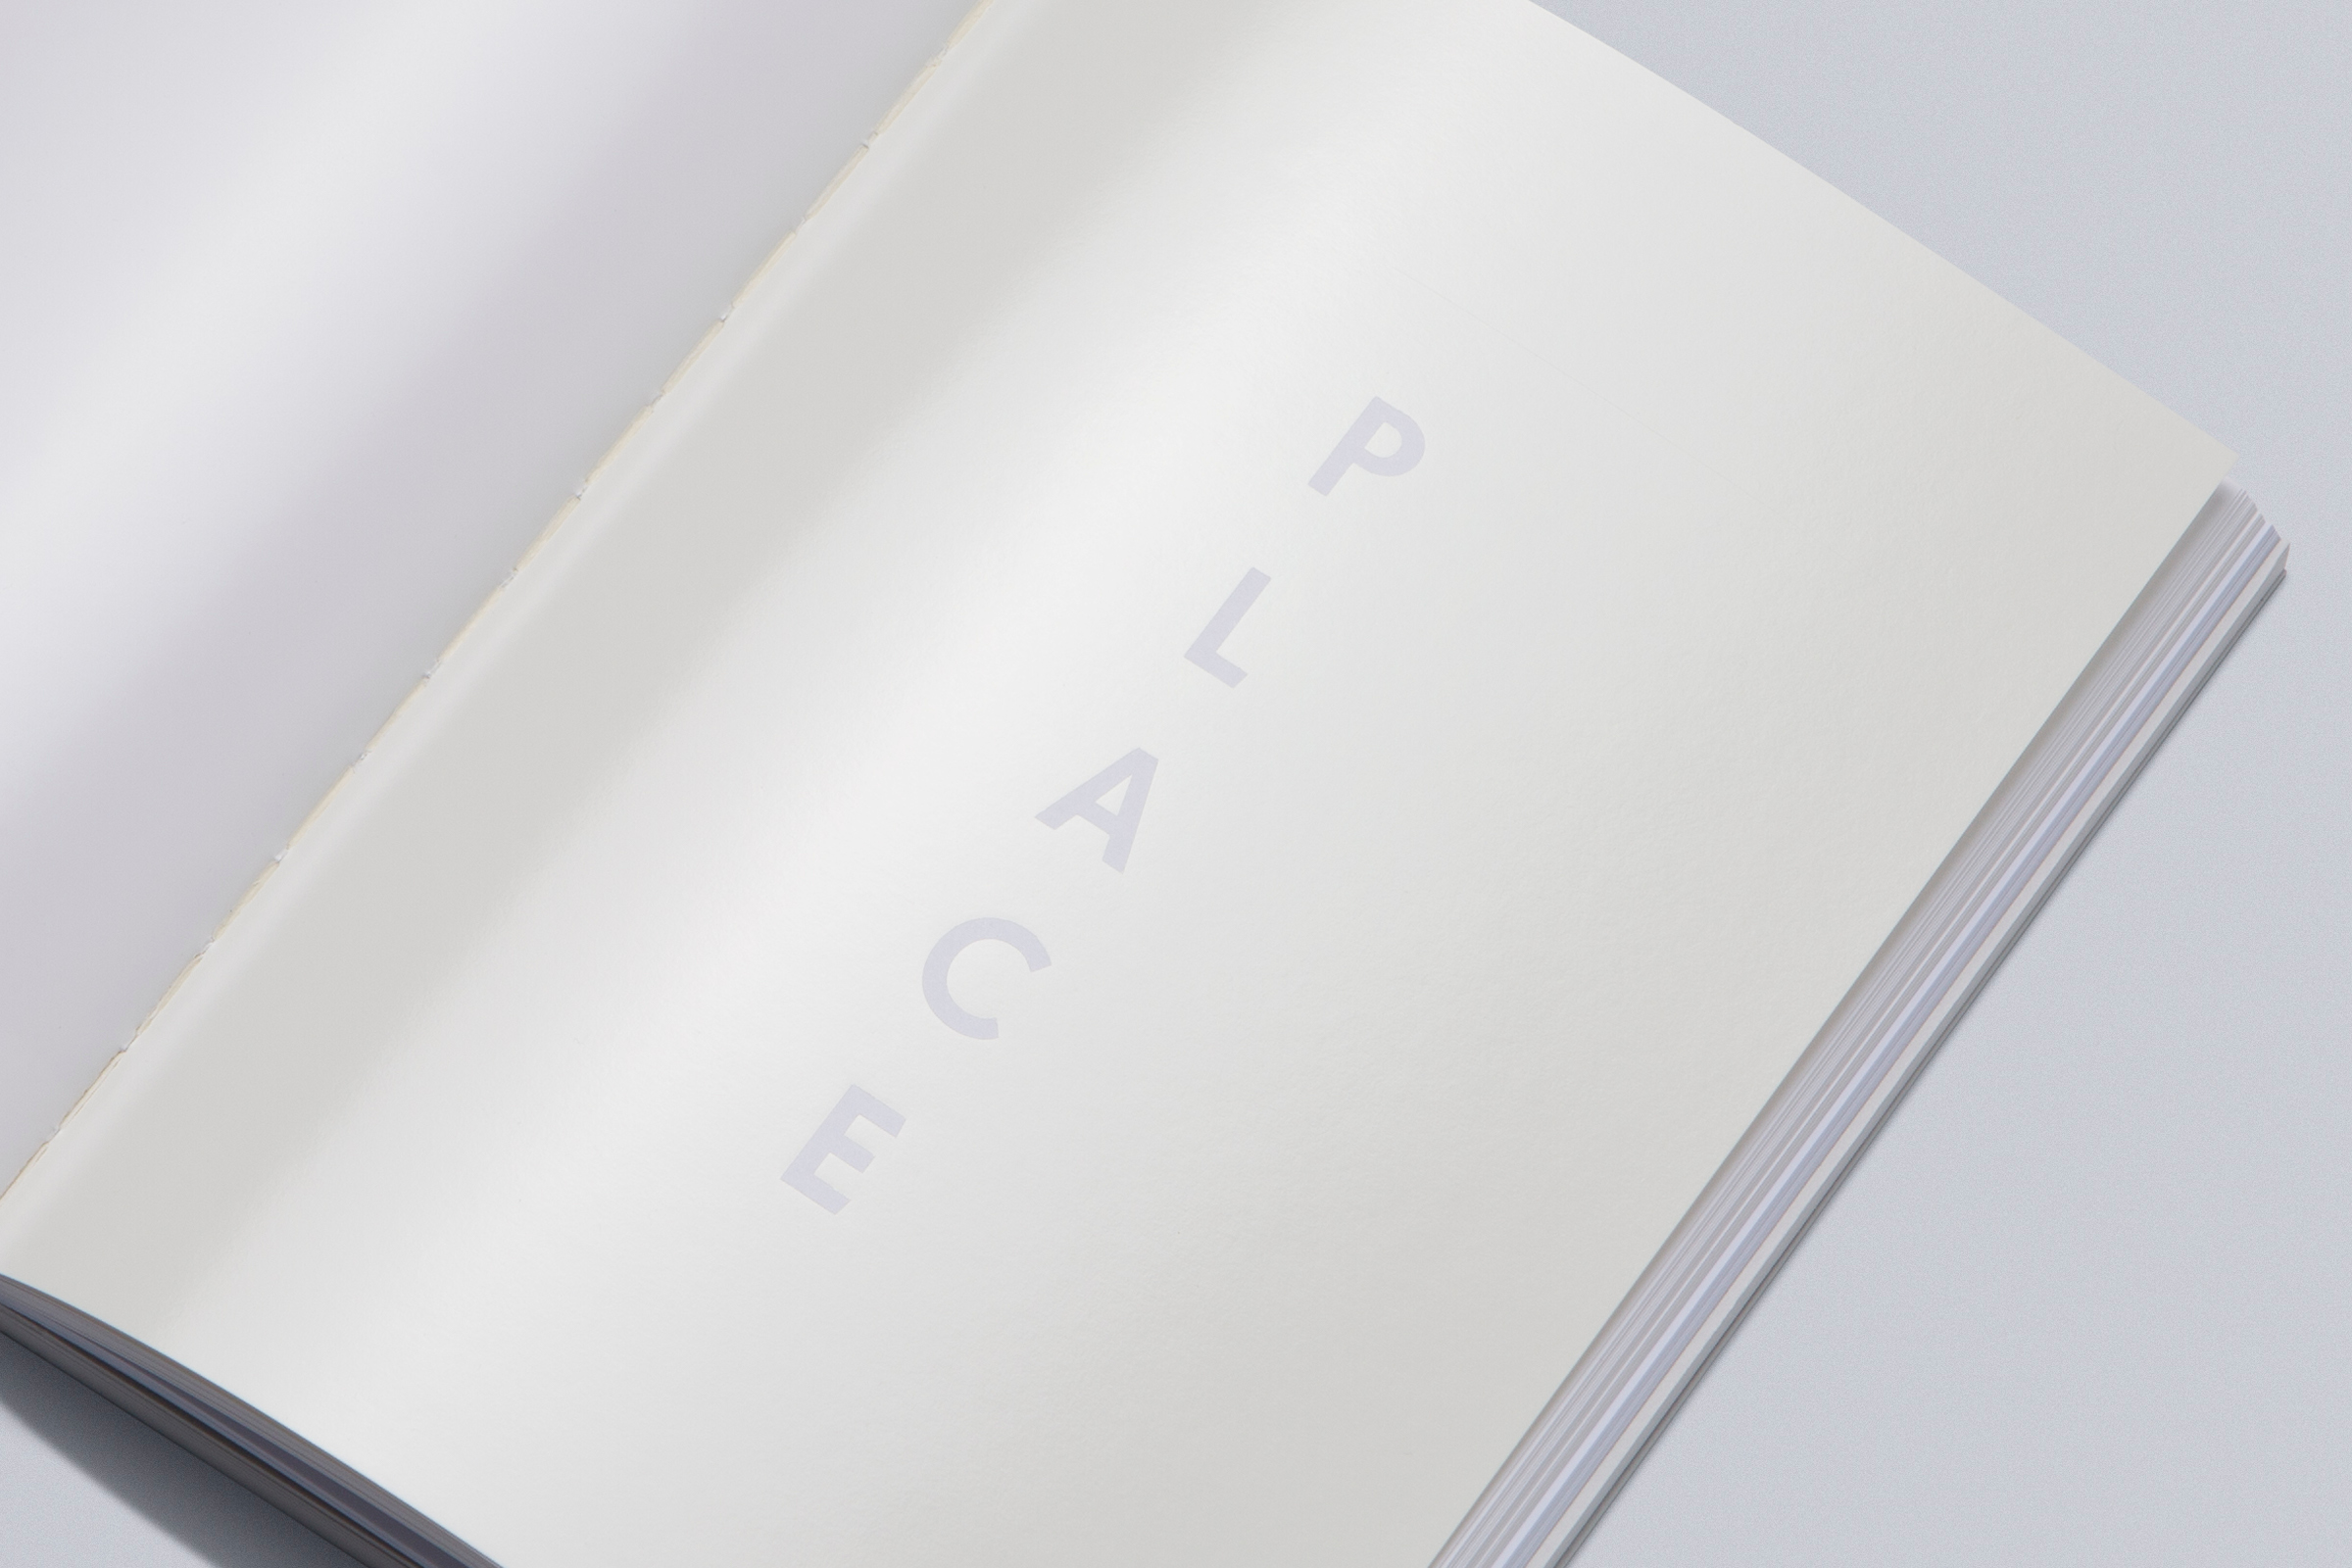 PLACE –INTRODUCTION & VAST EXPANSE  Overall Gloss White Foil with text reversed out on Mohawk Superfine Smooth Ultra White 148 gsm.